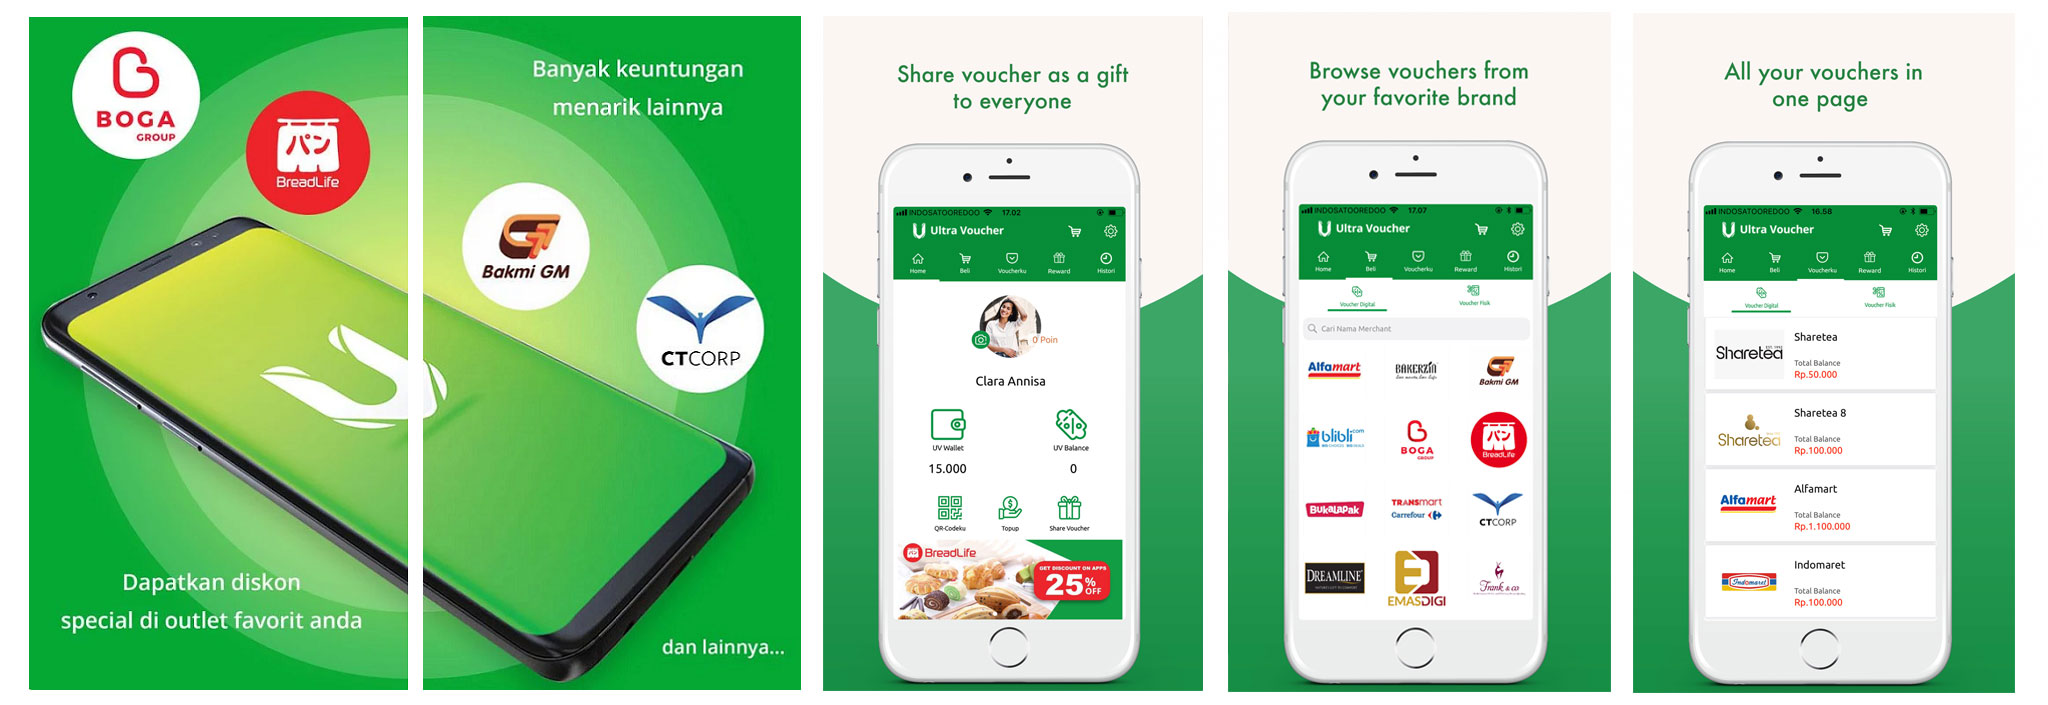 Carrefour Voucher 500000 Daftar Harga Terkini Dan Terlengkap Indonesia Indomaret Rp 10000000 Digital Code And From 2014 We Have Been Arrange Partnership Distribute Map Alfamart